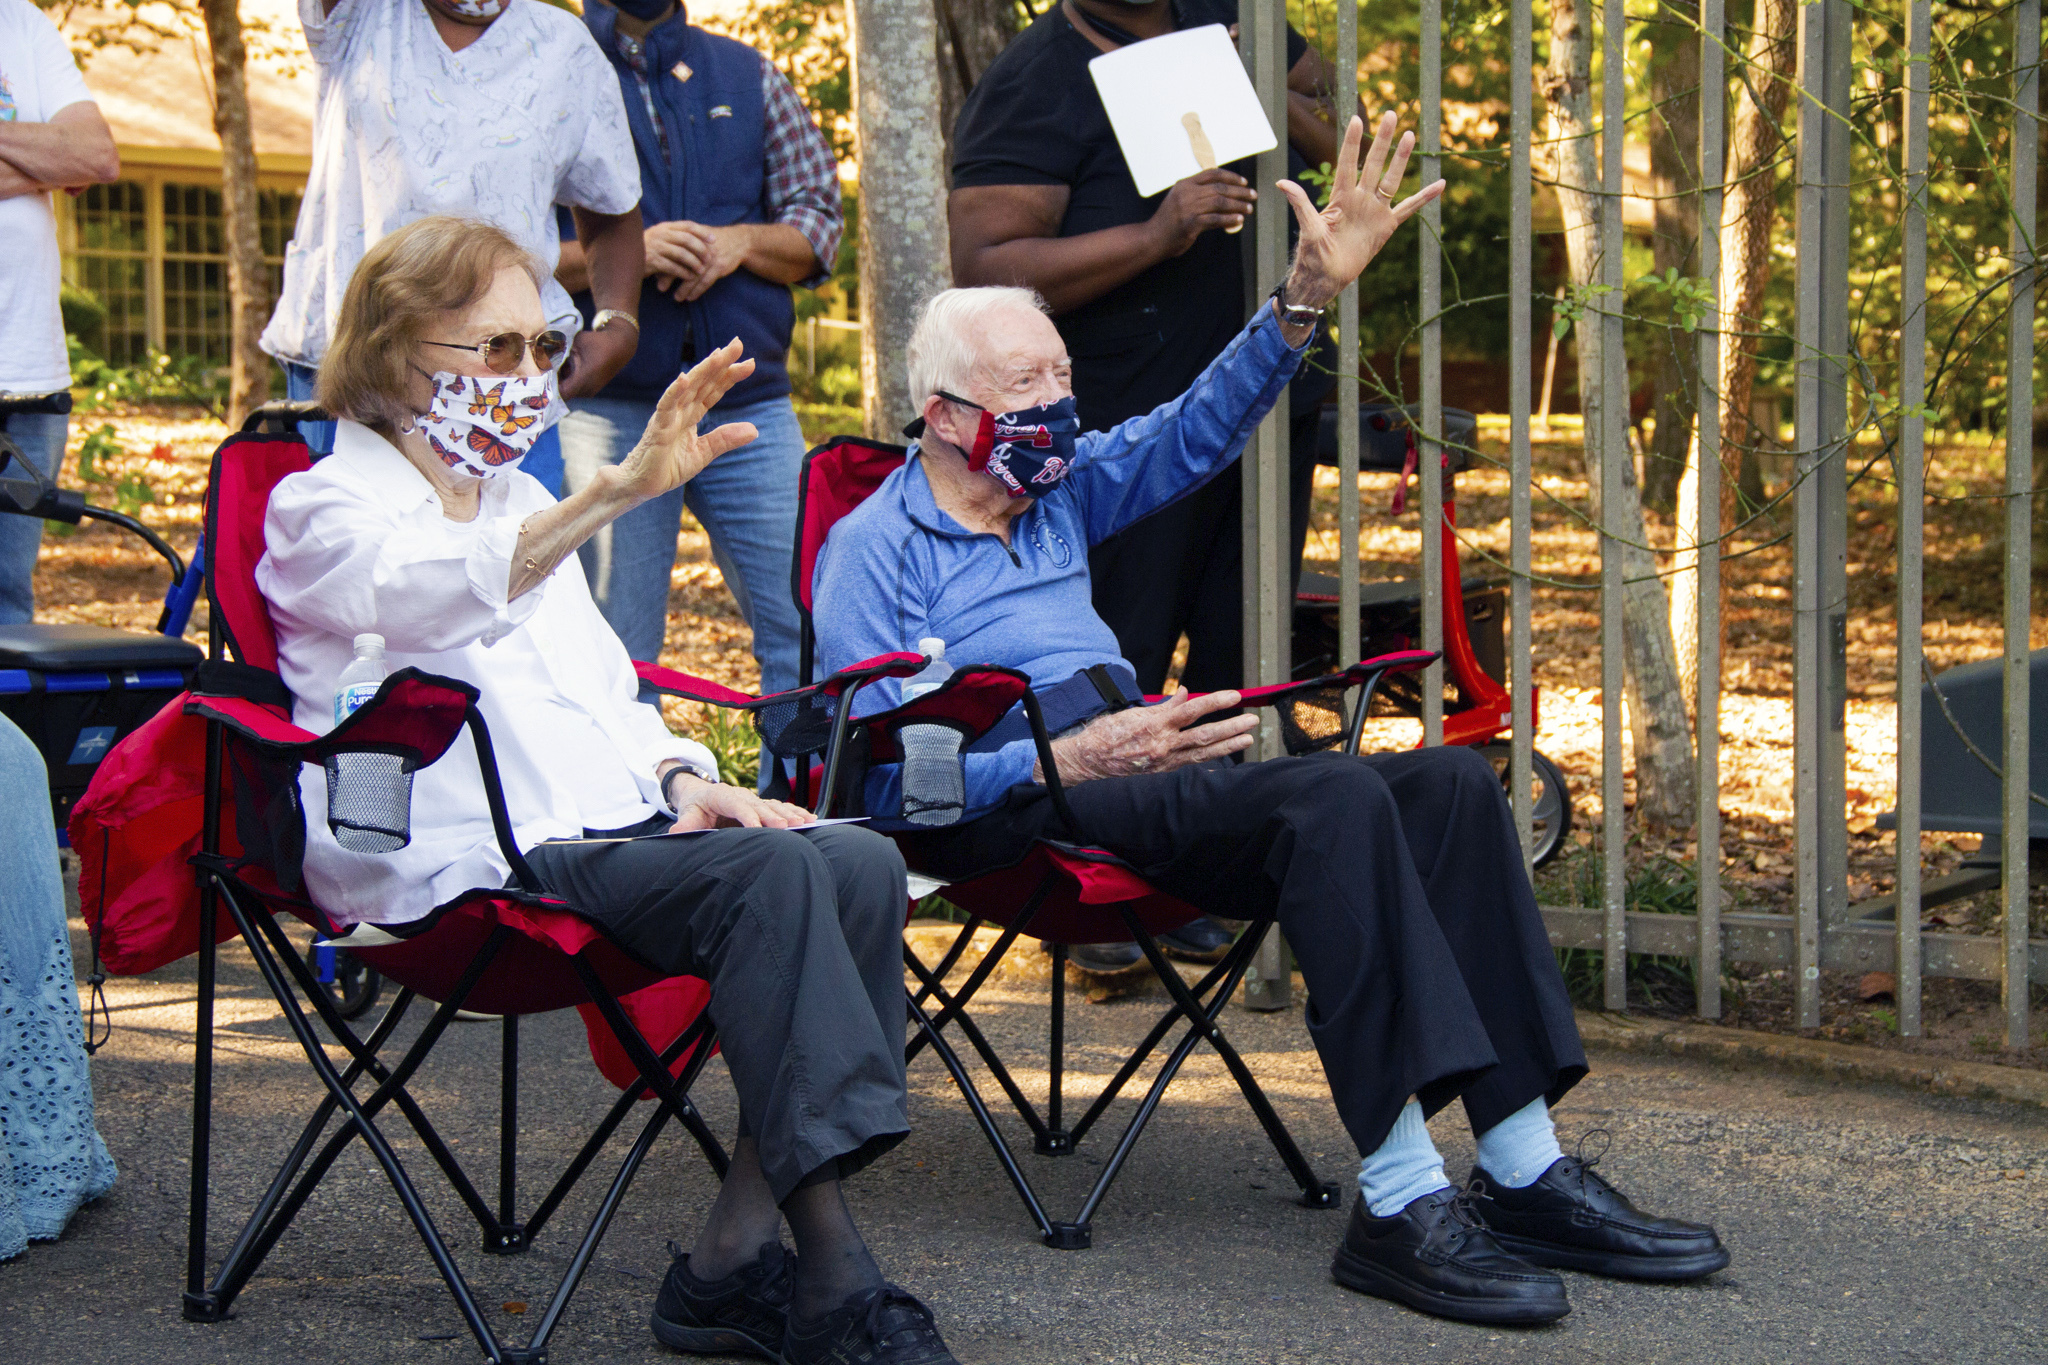 James Carter 2020 Halloween Mask A mask and parade: Jimmy Carter celebrates 96th birthday | CBS 17